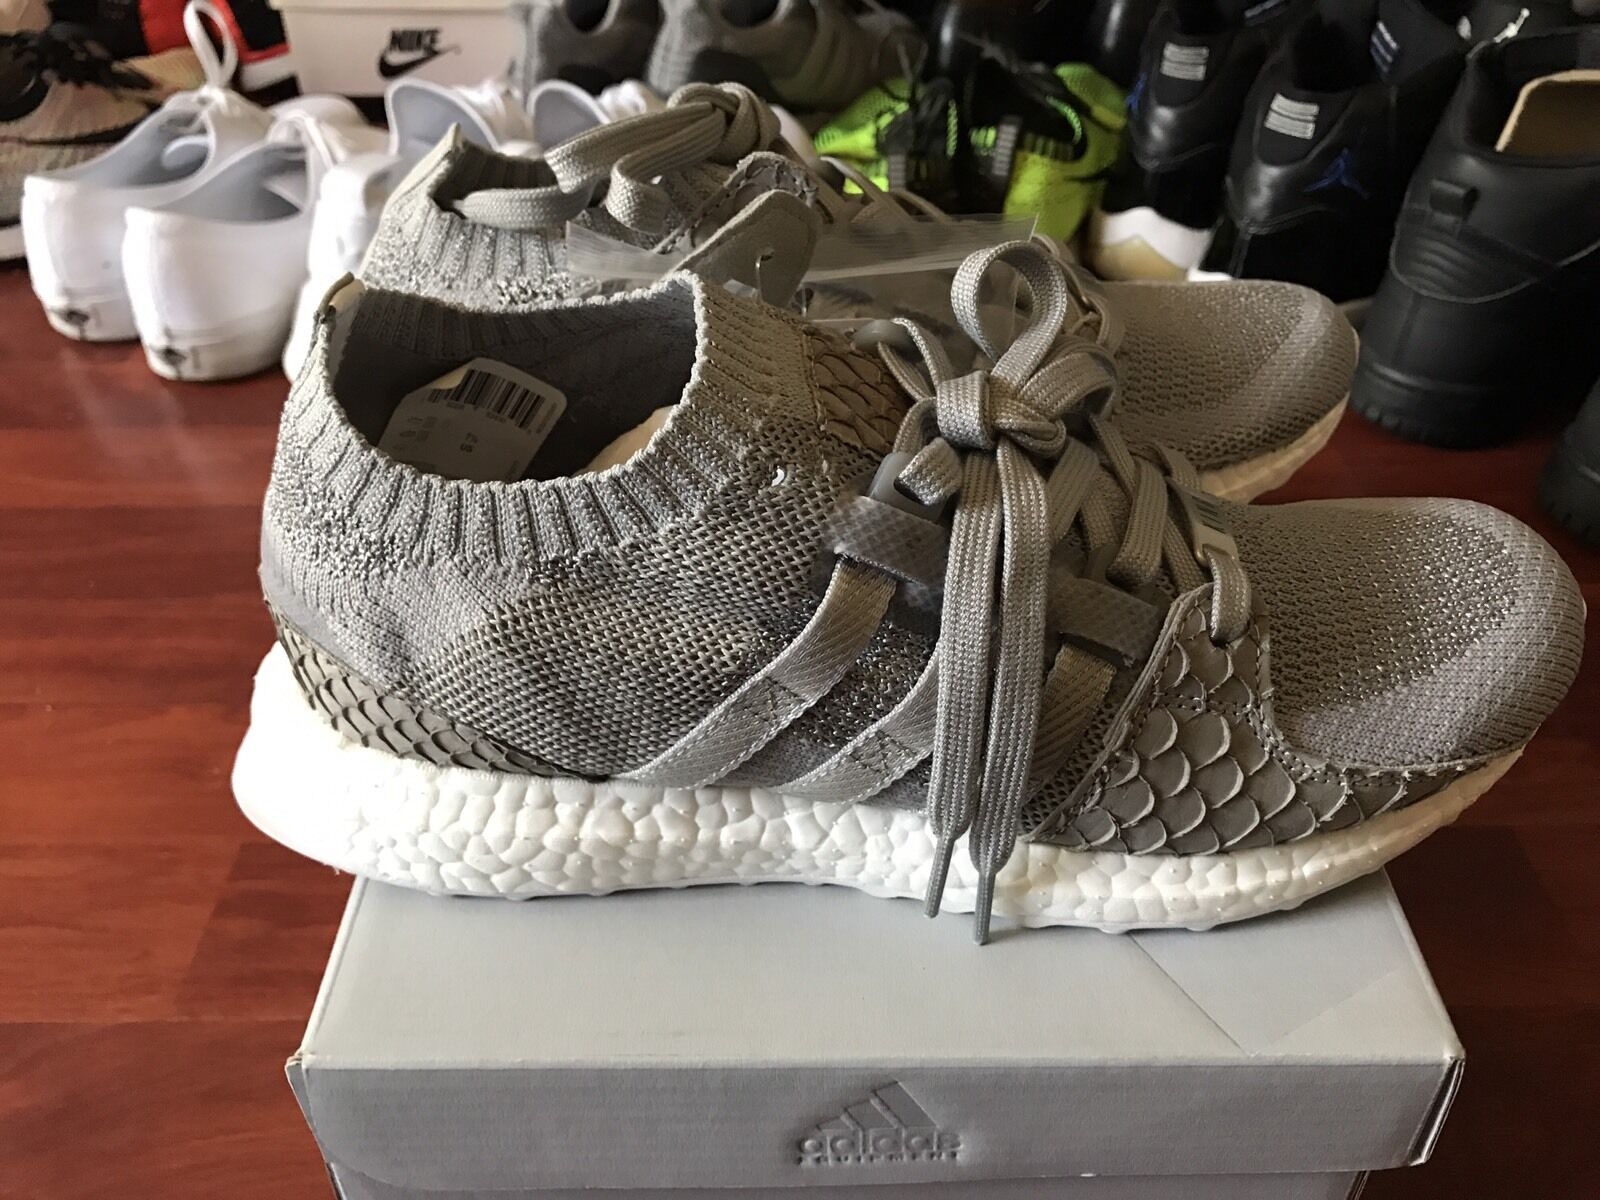 DS New Adidas x Pusha Pusha Pusha T King Push EQT Support Ultra PK Boost S76777 Size 7.5 Ltd 6aa603